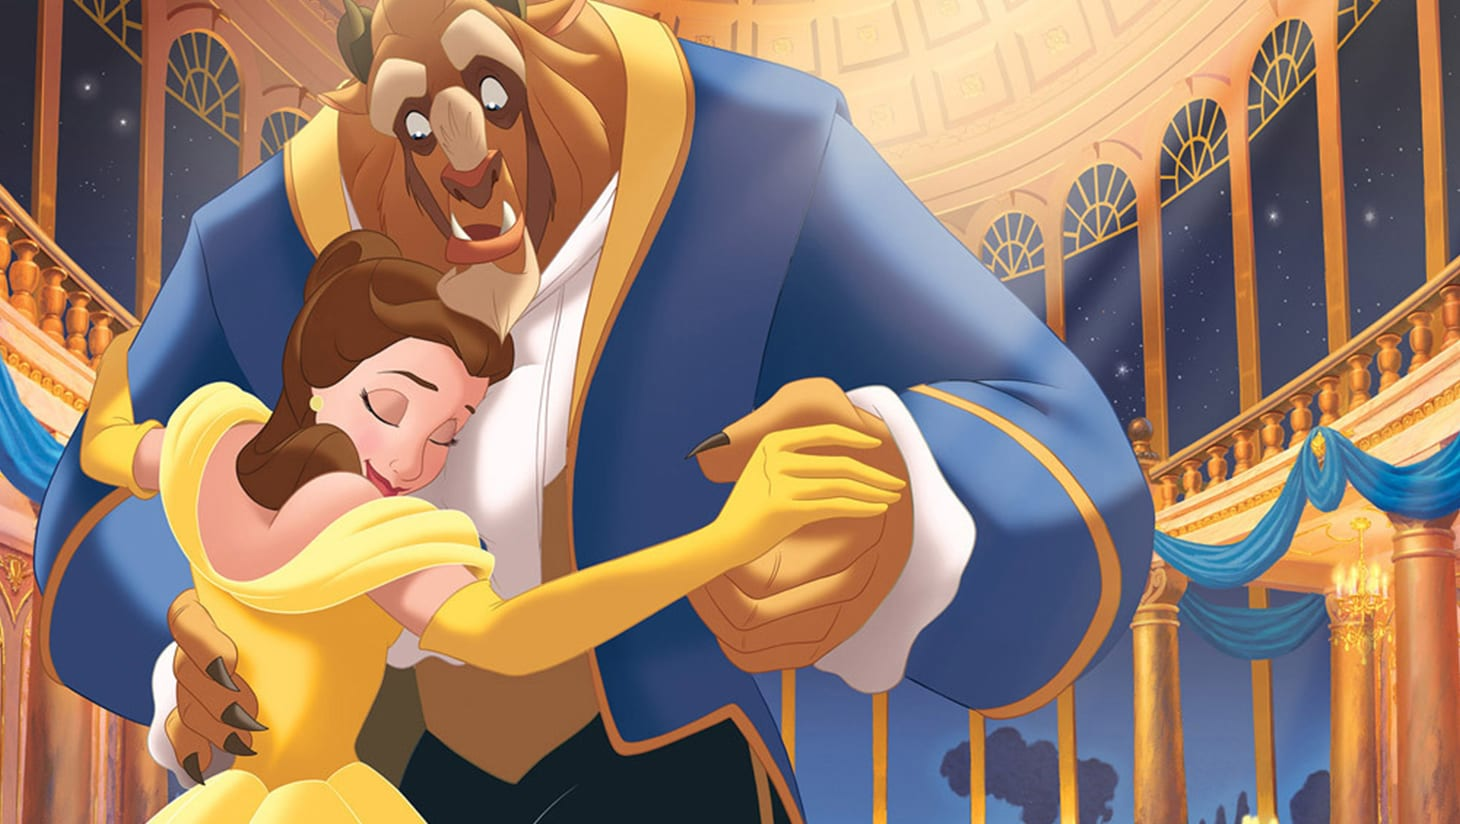 Belle and the Beast in the ballroom